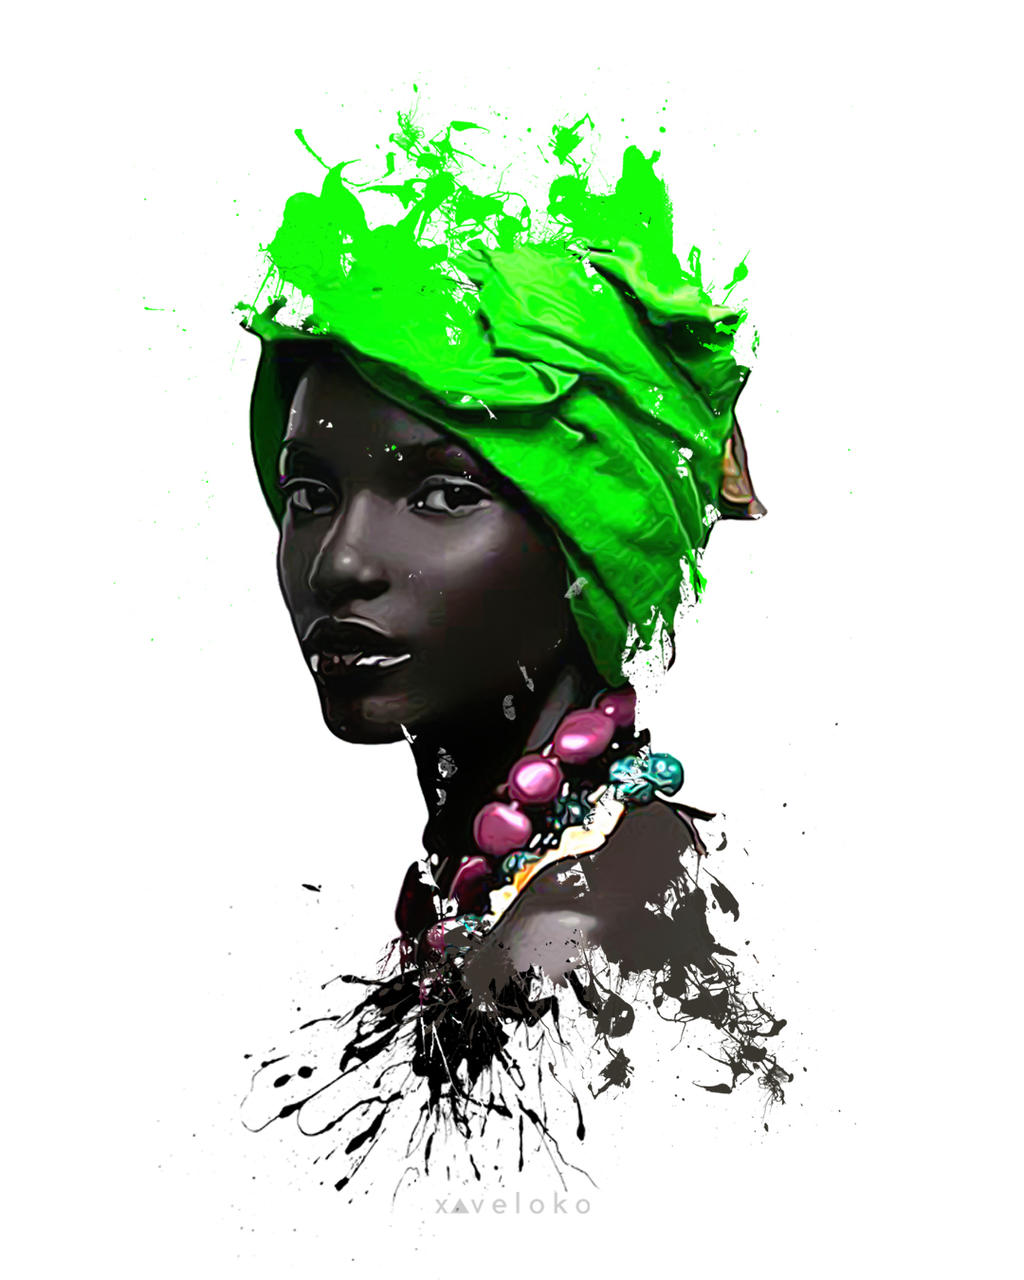 Head Wrap by xavierlokollo